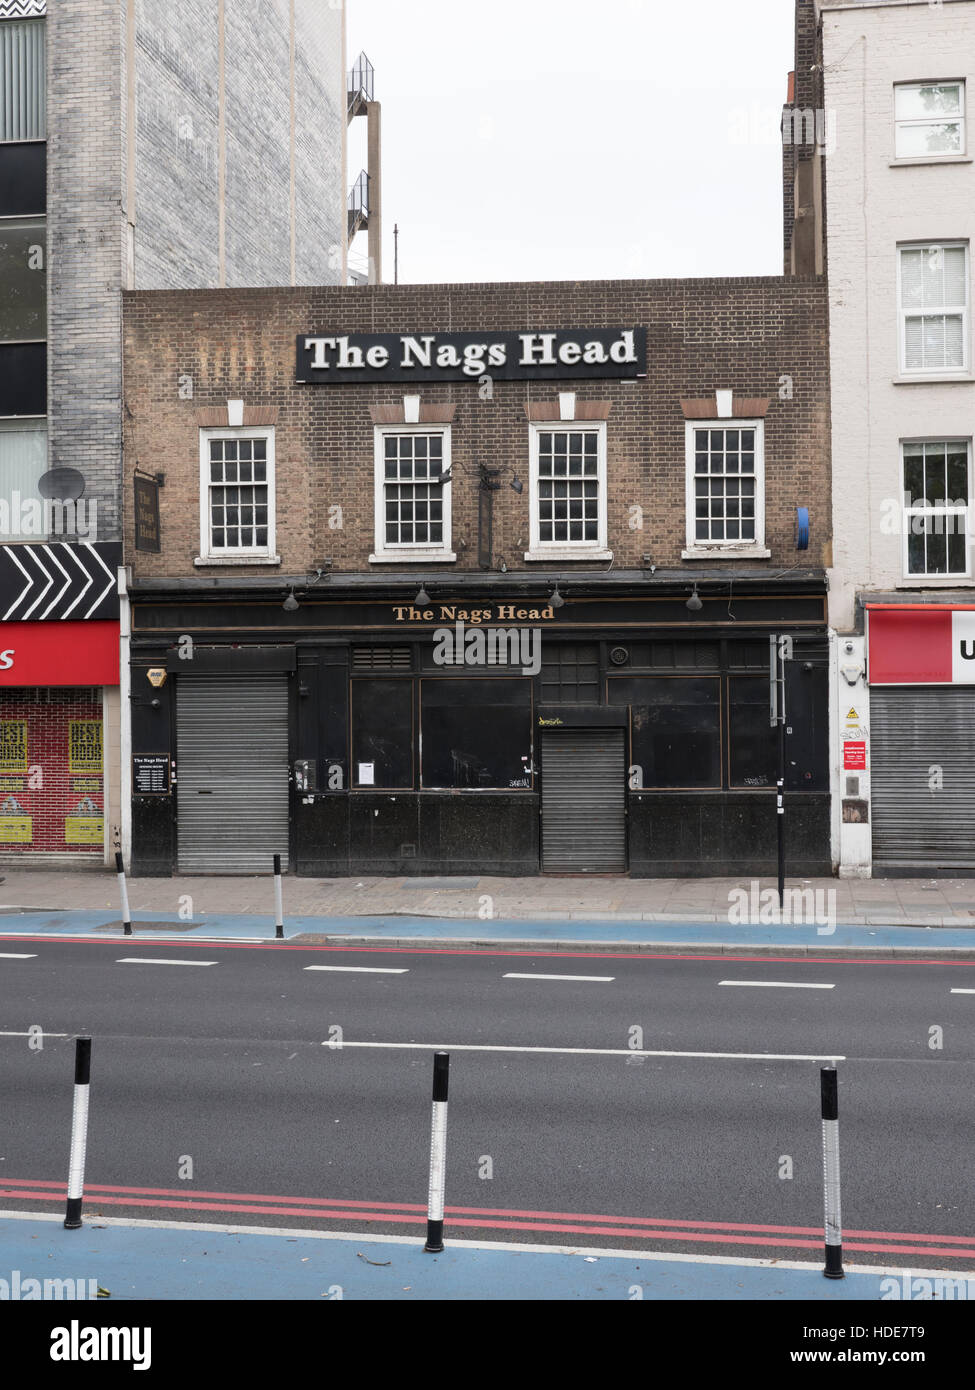 The Nag's Head public house on Whitechapel High Street in London's East End - Stock Image